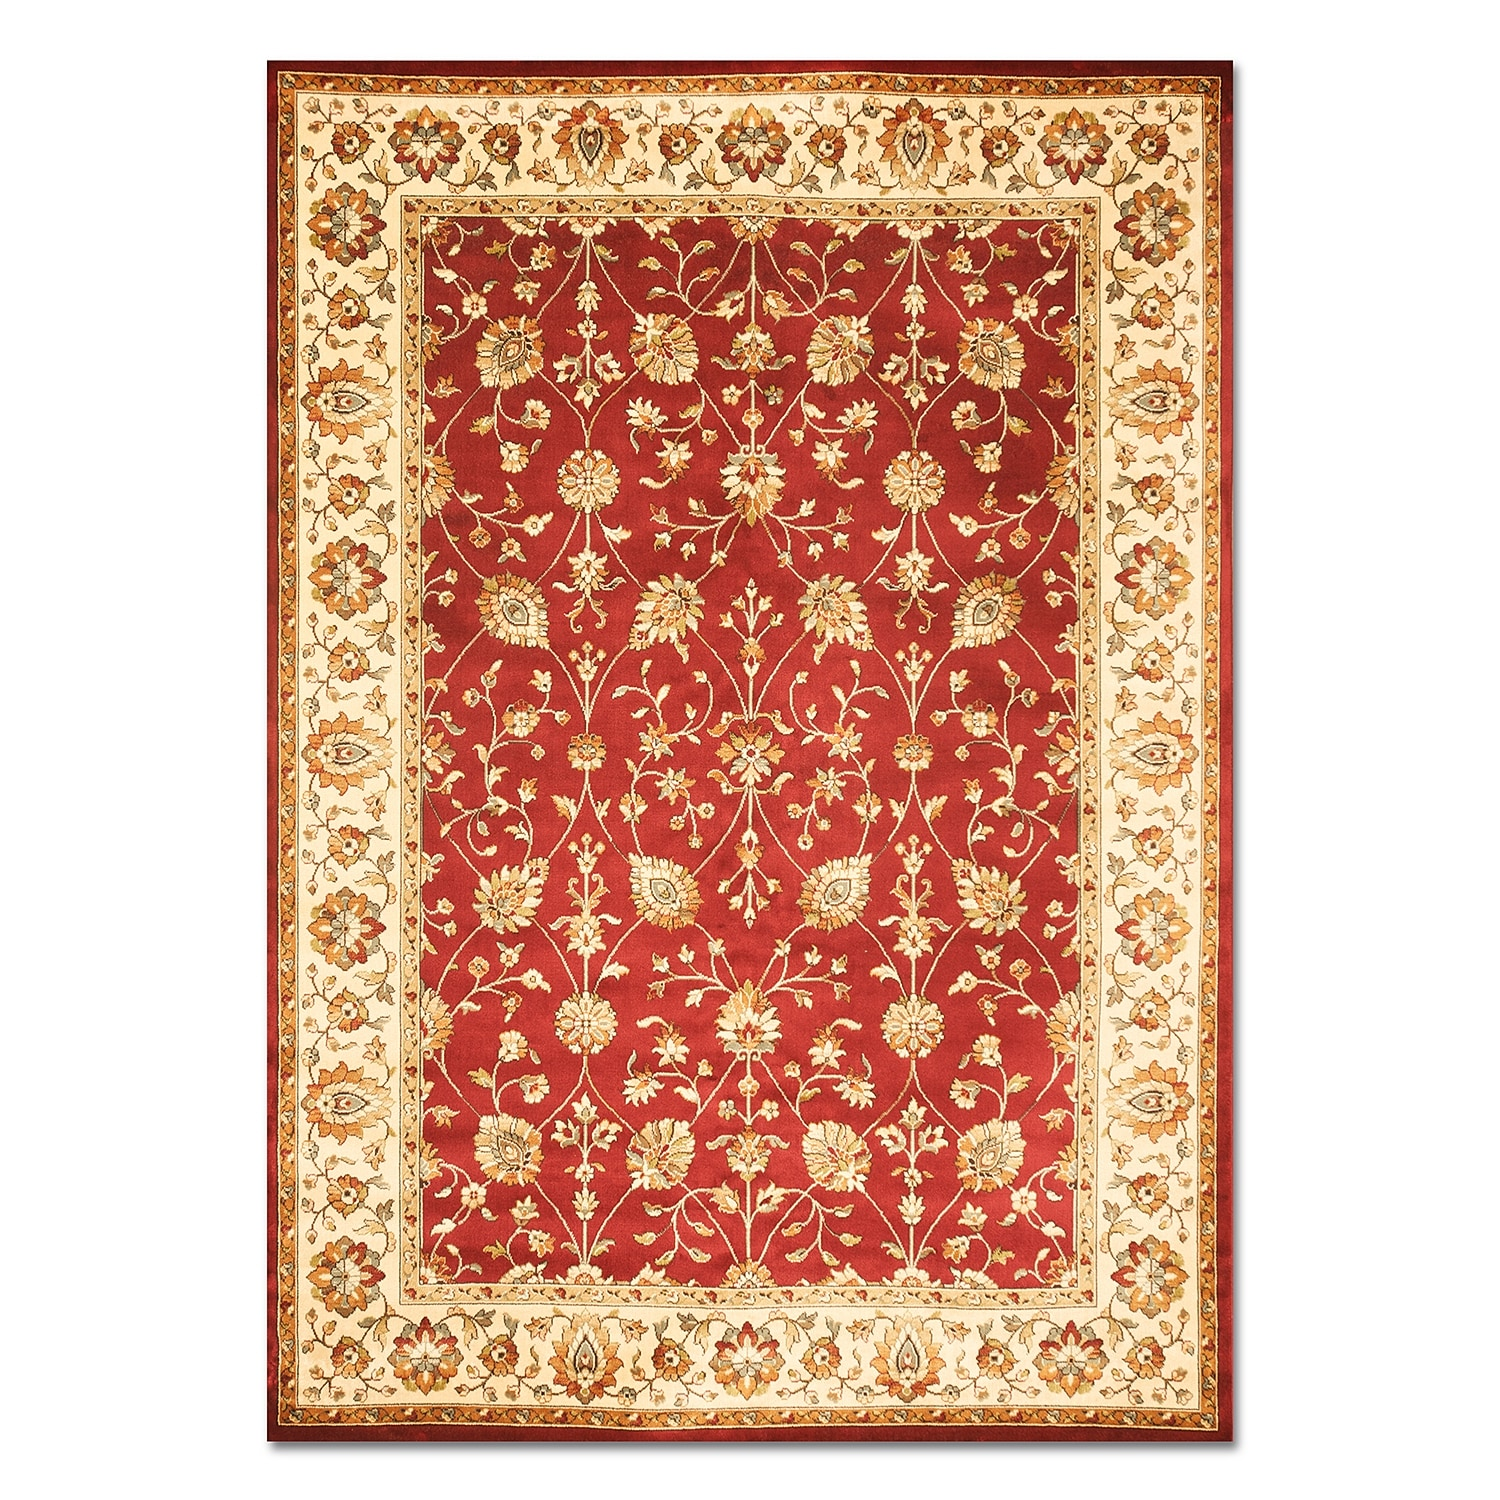 sonoma noble area rugs area rug 8 x 10 value city